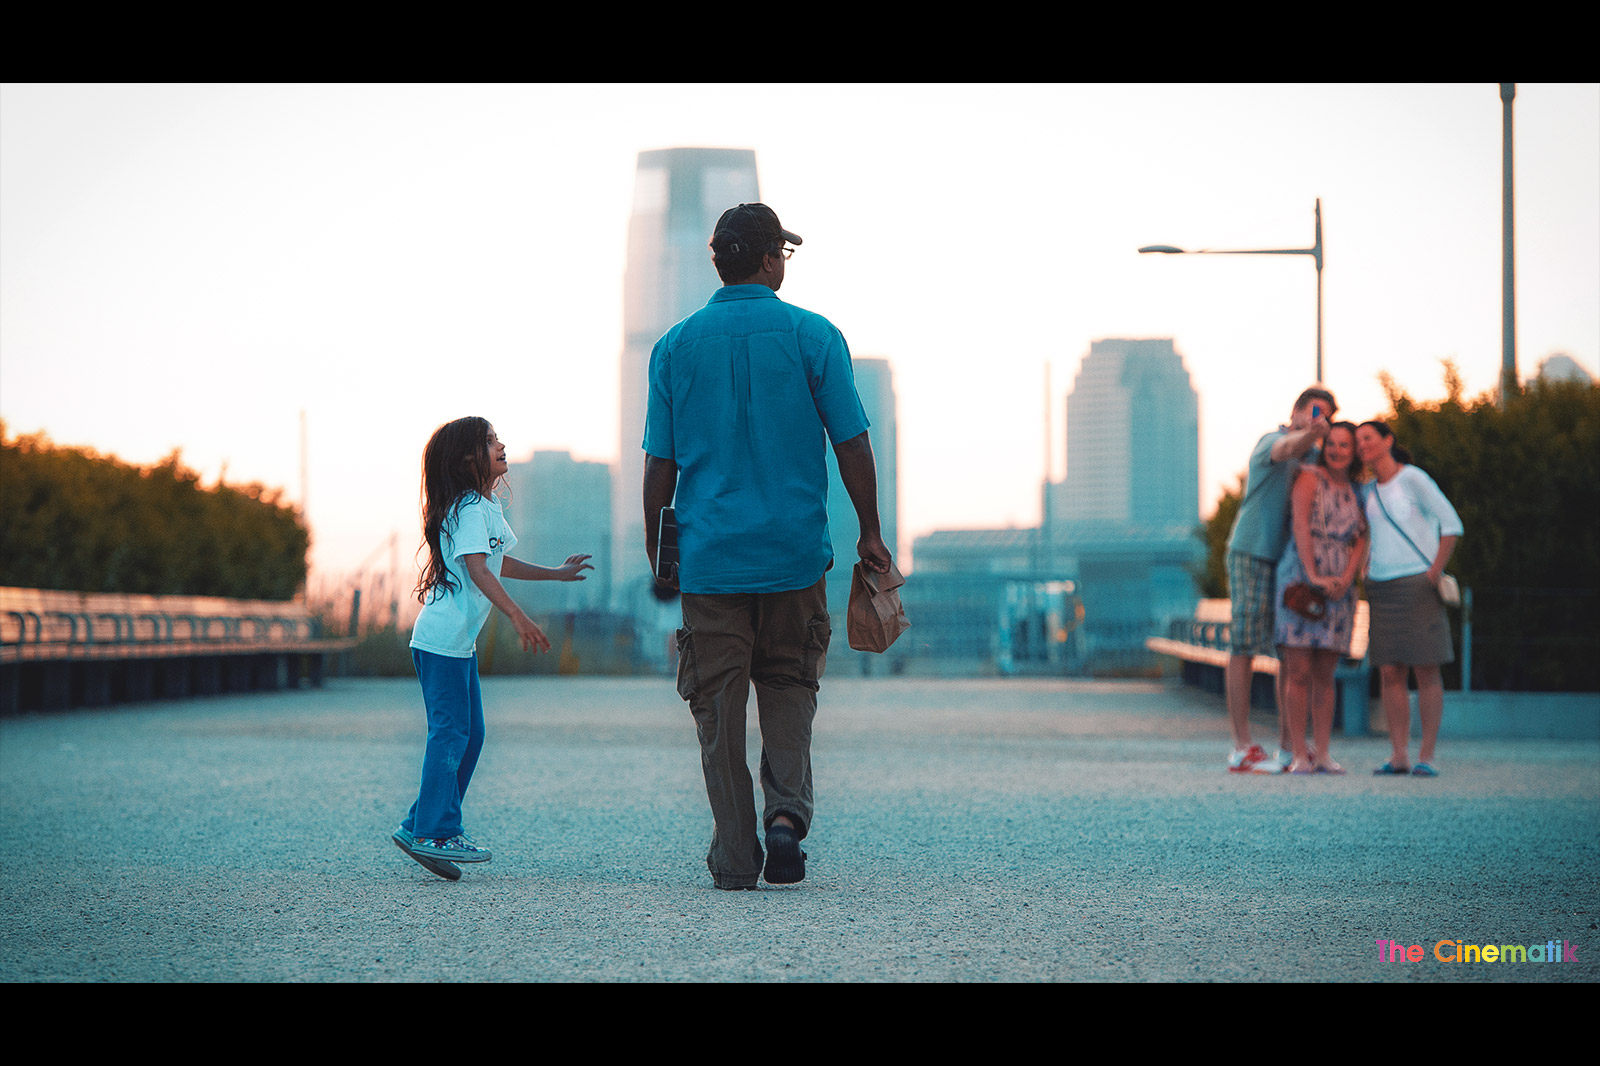 Little girl harassing her tall father in New York sunset cinematic photograph by Kamal Lahmadi/THE CINEMATIK